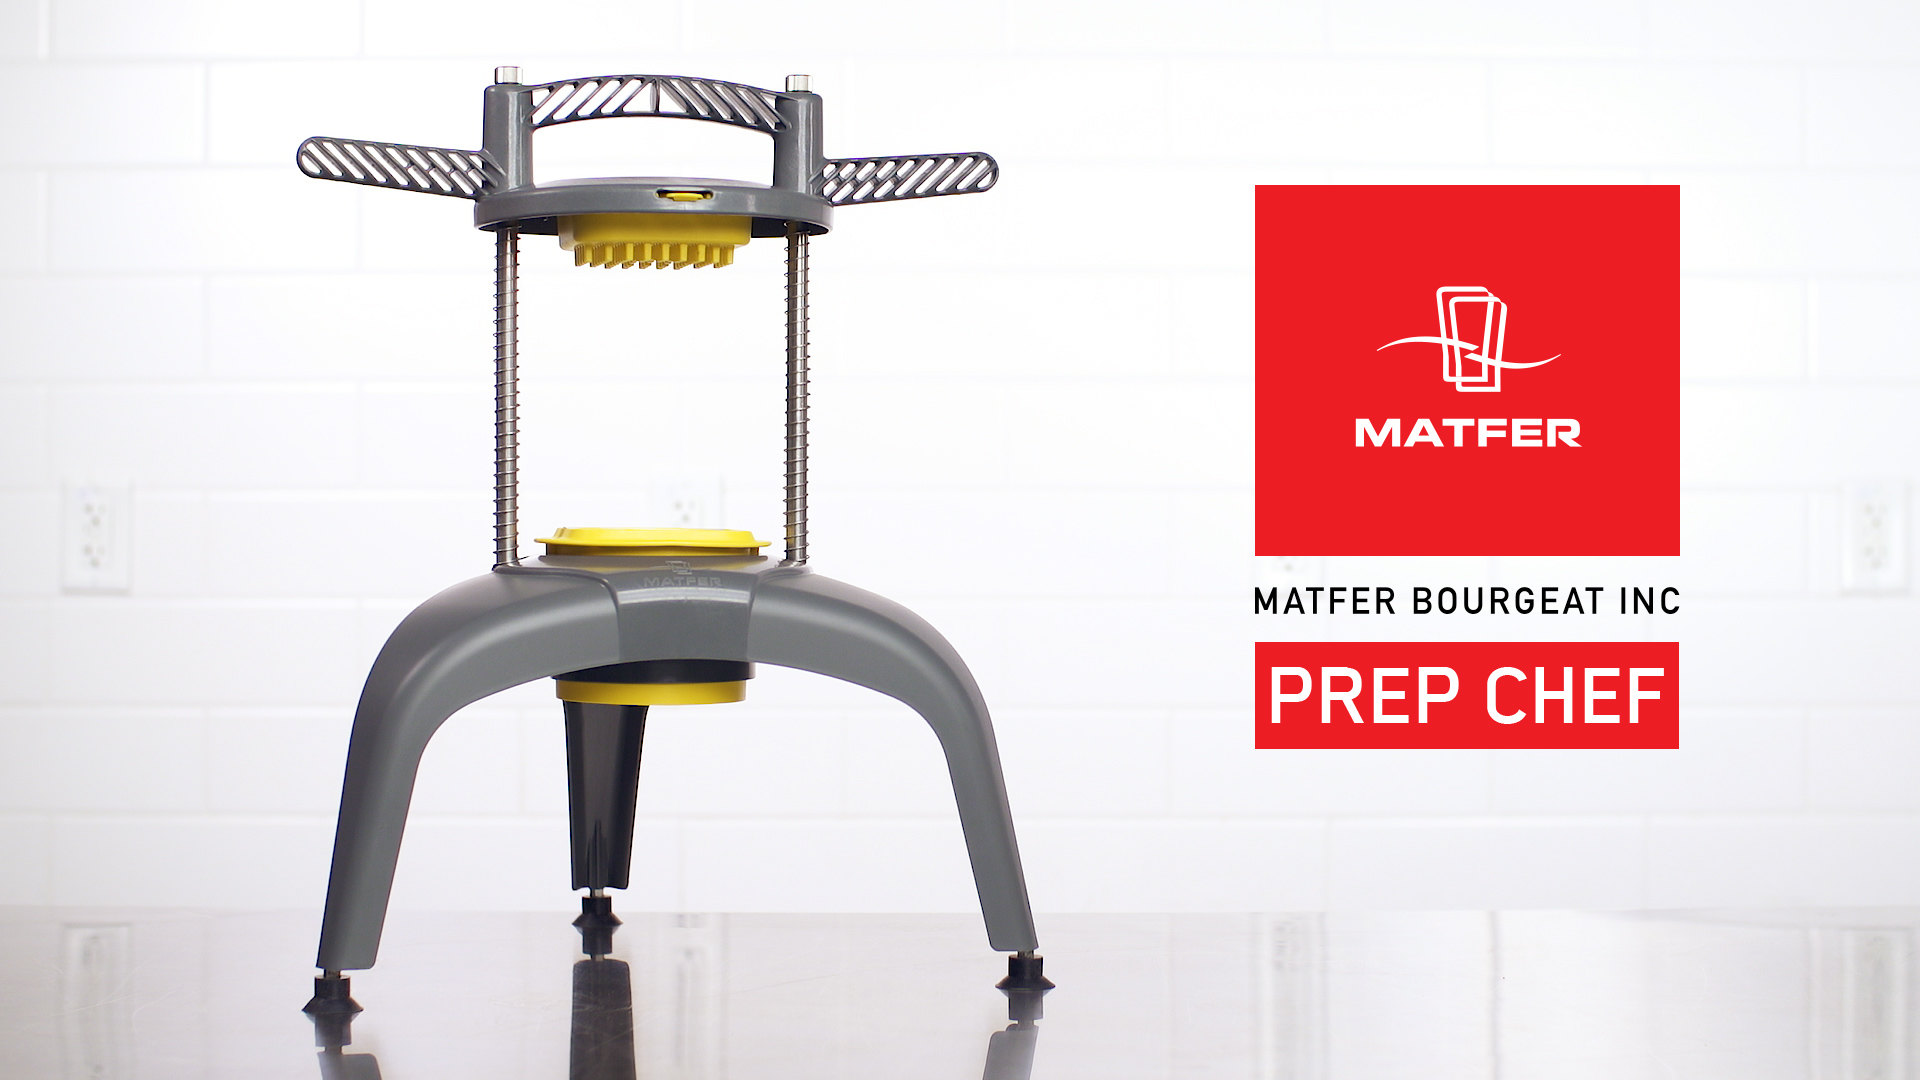 Matfer's Prep Chef: A food prep tool that every kitchen operation should have